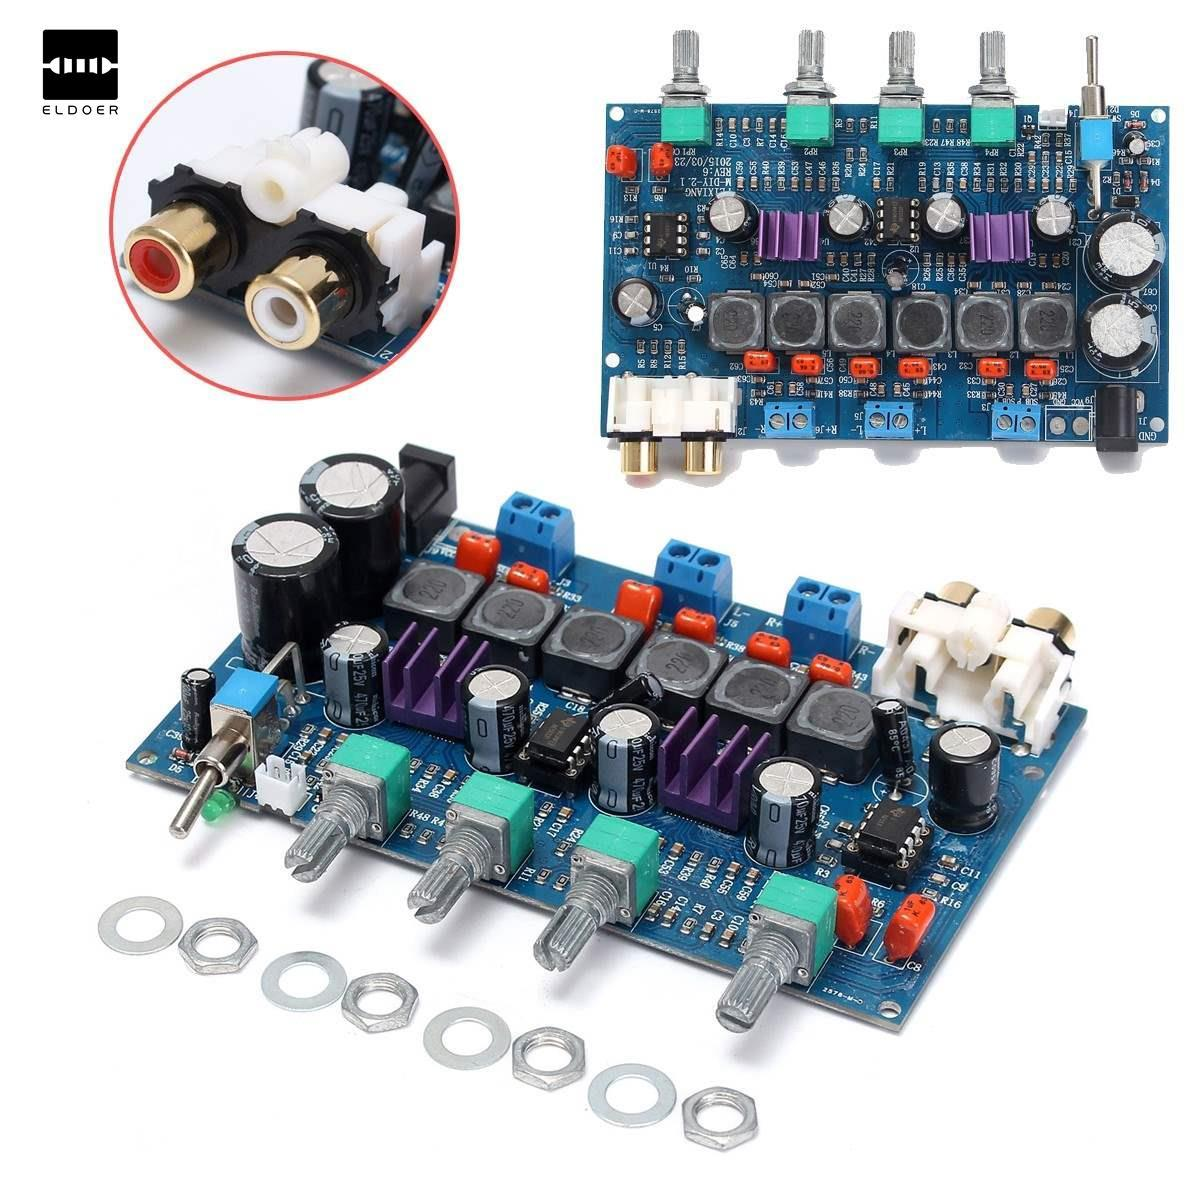 2018 21 Digital Amplifier Board Subwoofer Amp Tpa3116d2 50w 100w For 12v 24v Car New Electric Circuits From Wcr0406 4089